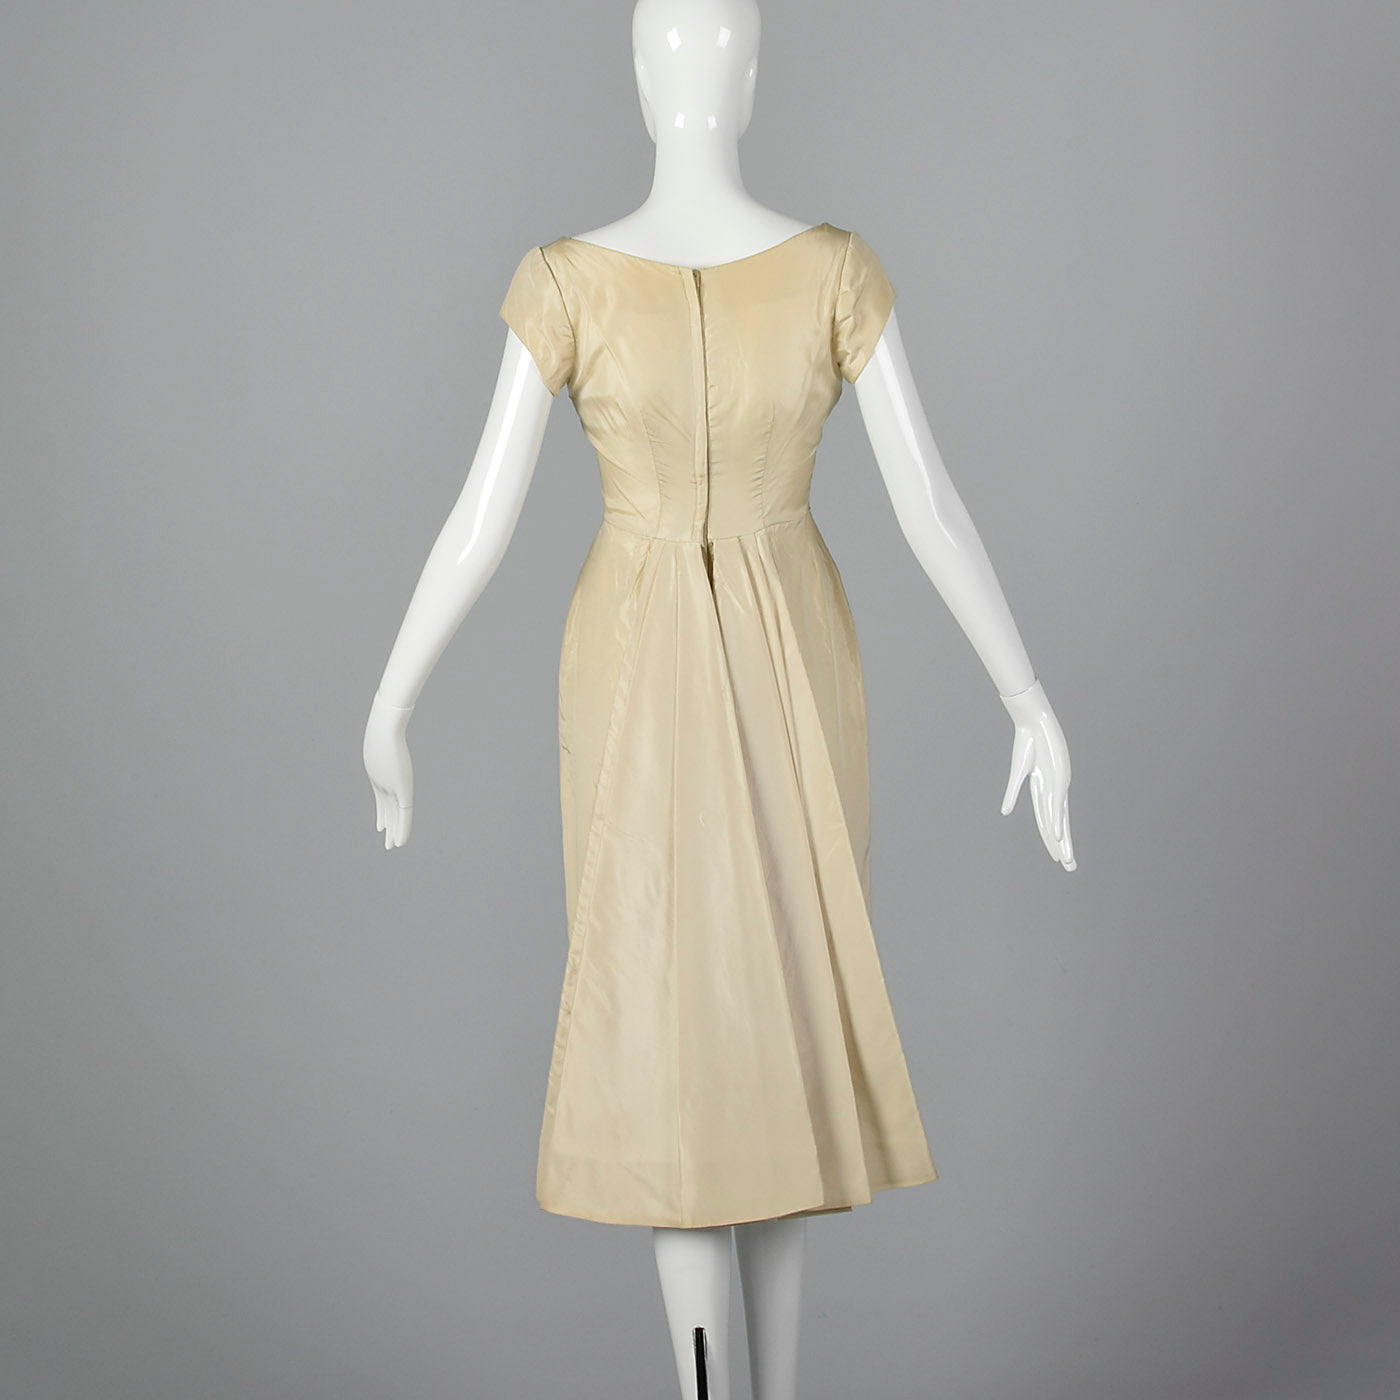 1950s Ivory Wedding Dress with Overskirt